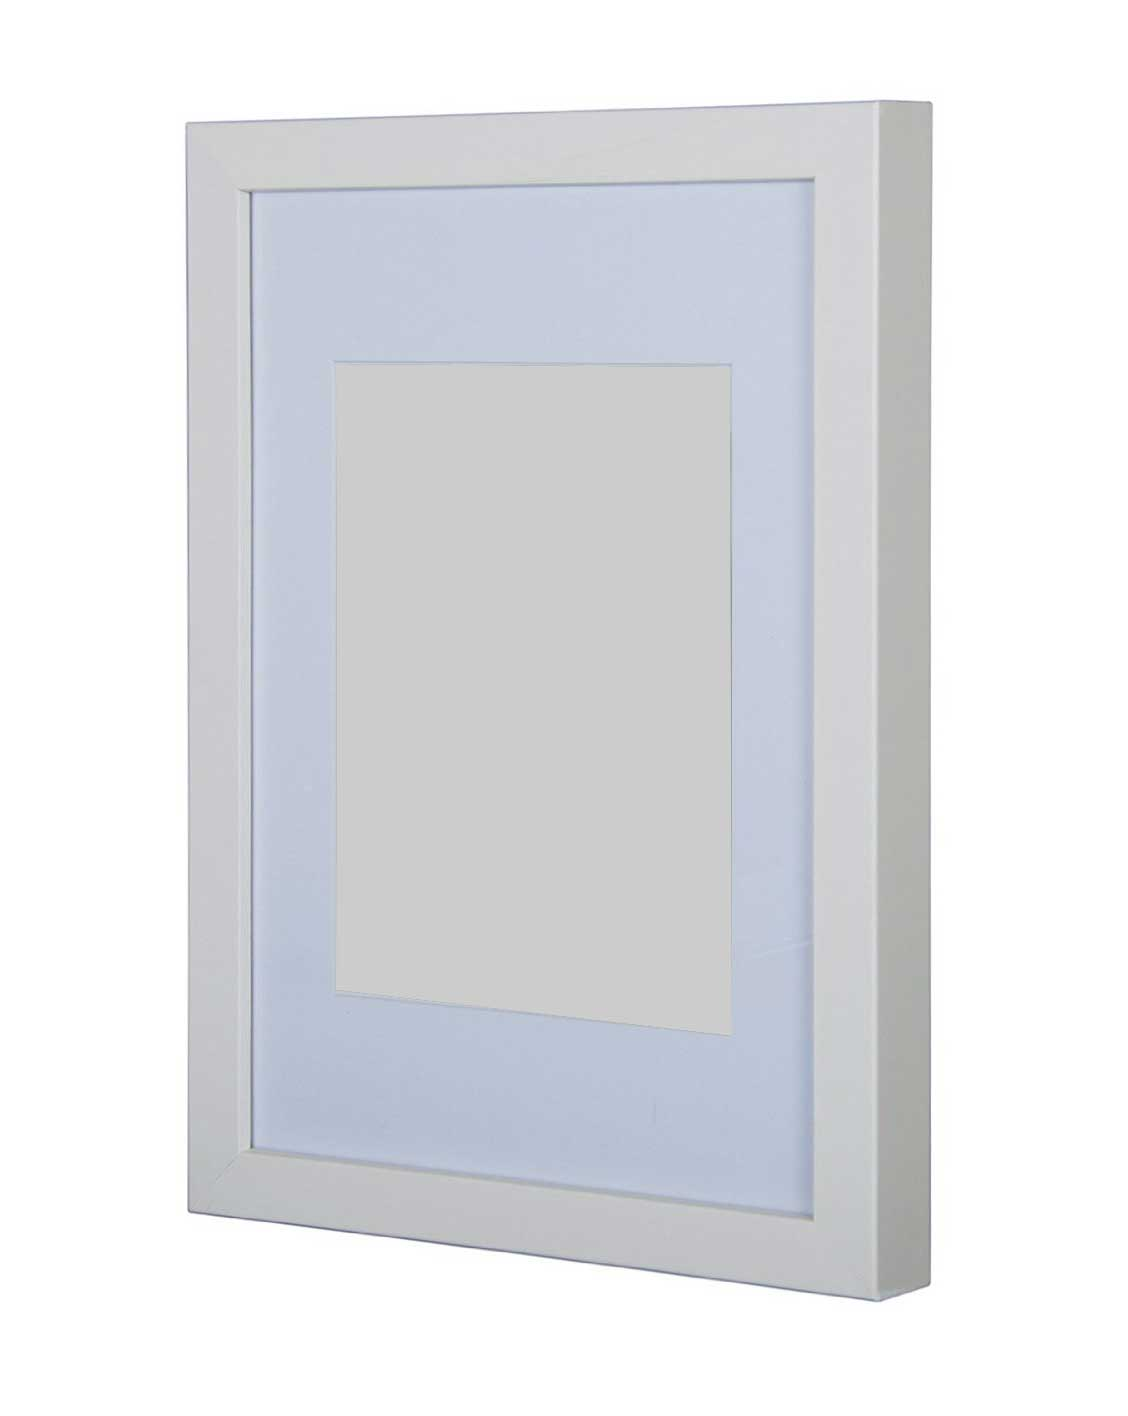 Gallery Wooden Picture Frame White A1 with A2 mount